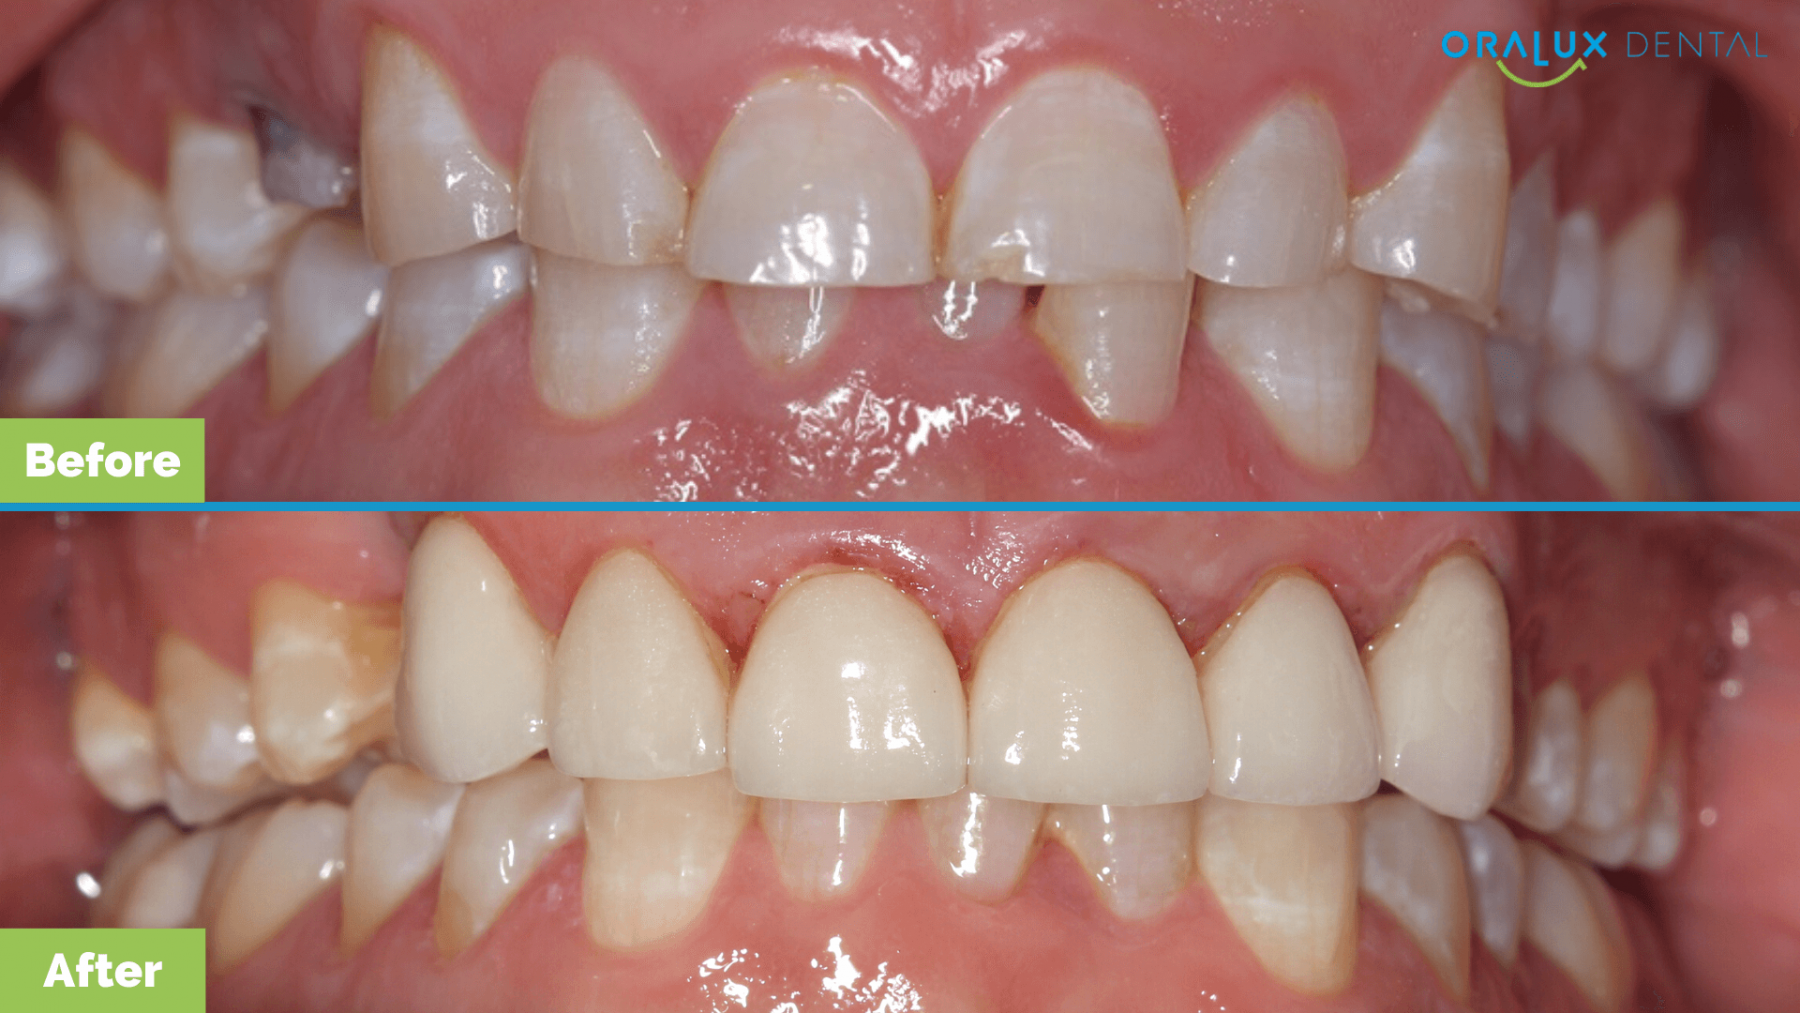 Oralux-Dental-Chriss-Smile-Makeover-1.png-nggid03174-ngg0dyn-1800x1013x100-00f0w010c010r110f110r010t010